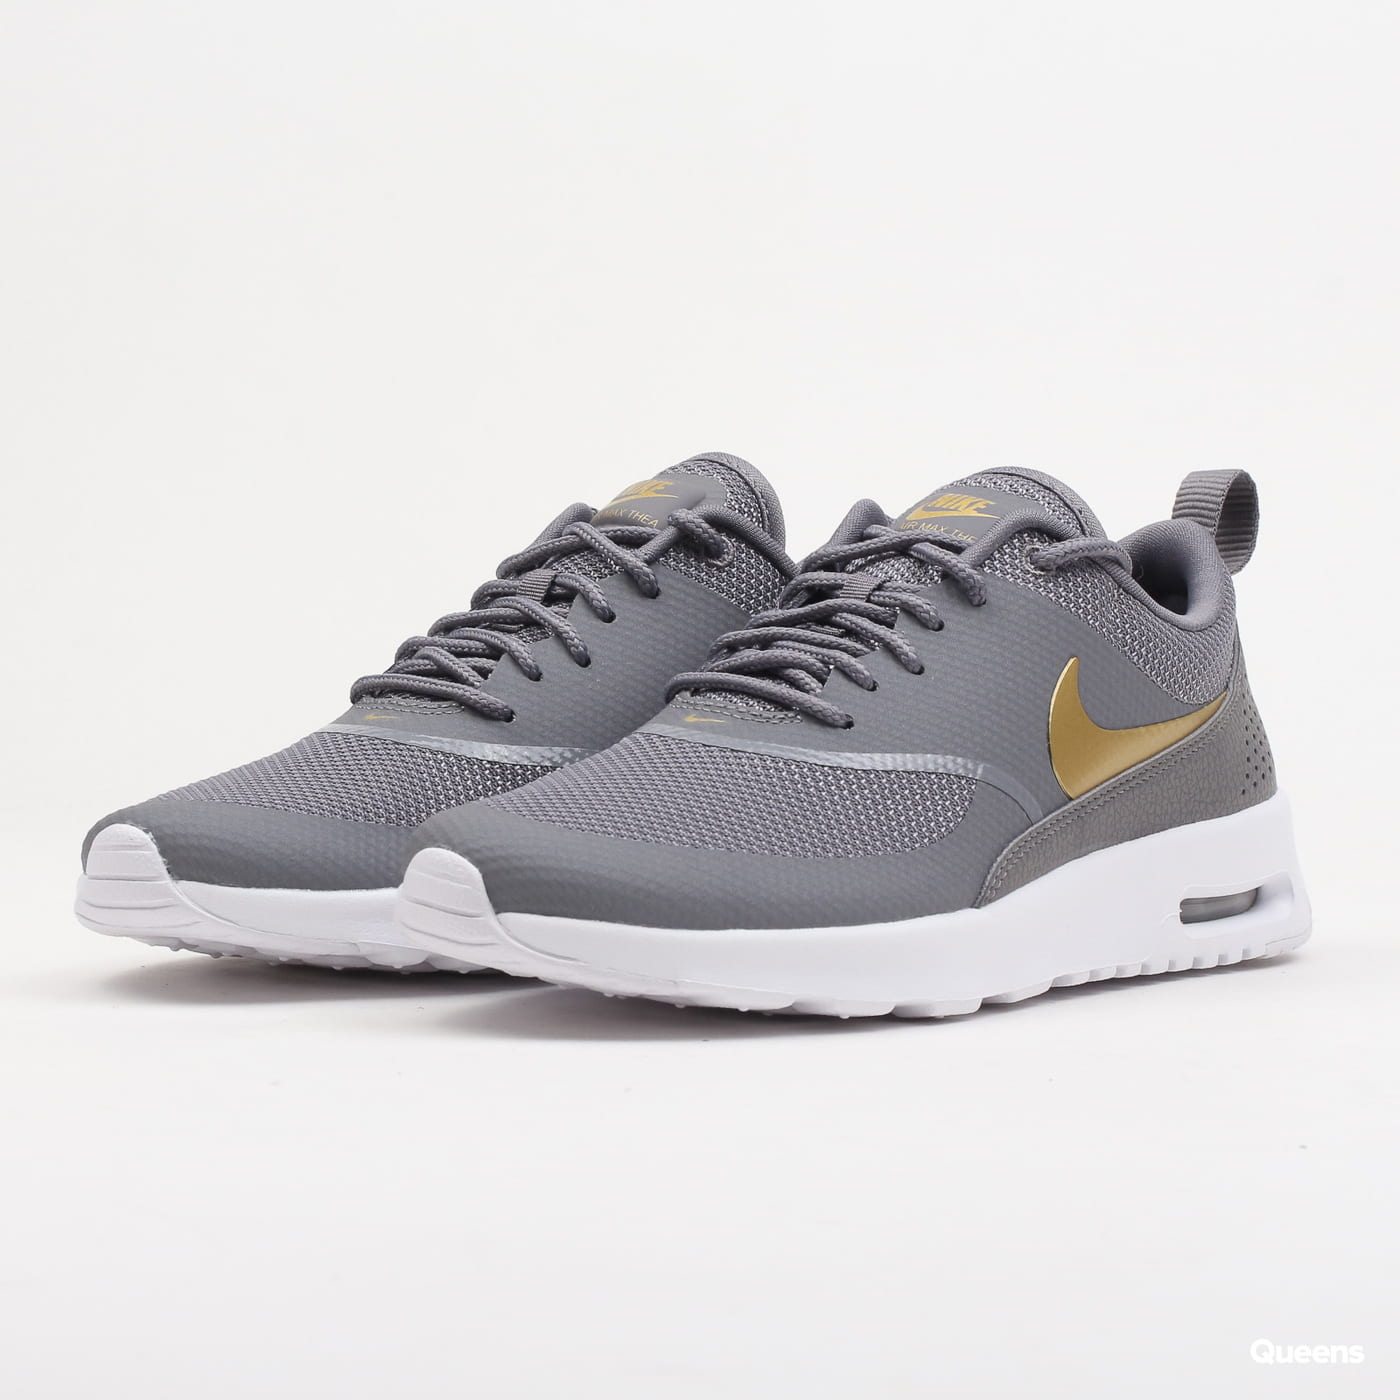 finest selection ee675 7ac06 Nike WMNS Air Max Thea J gunsmoke   metallic gold - white (AJ2010-003) –  Queens 💚